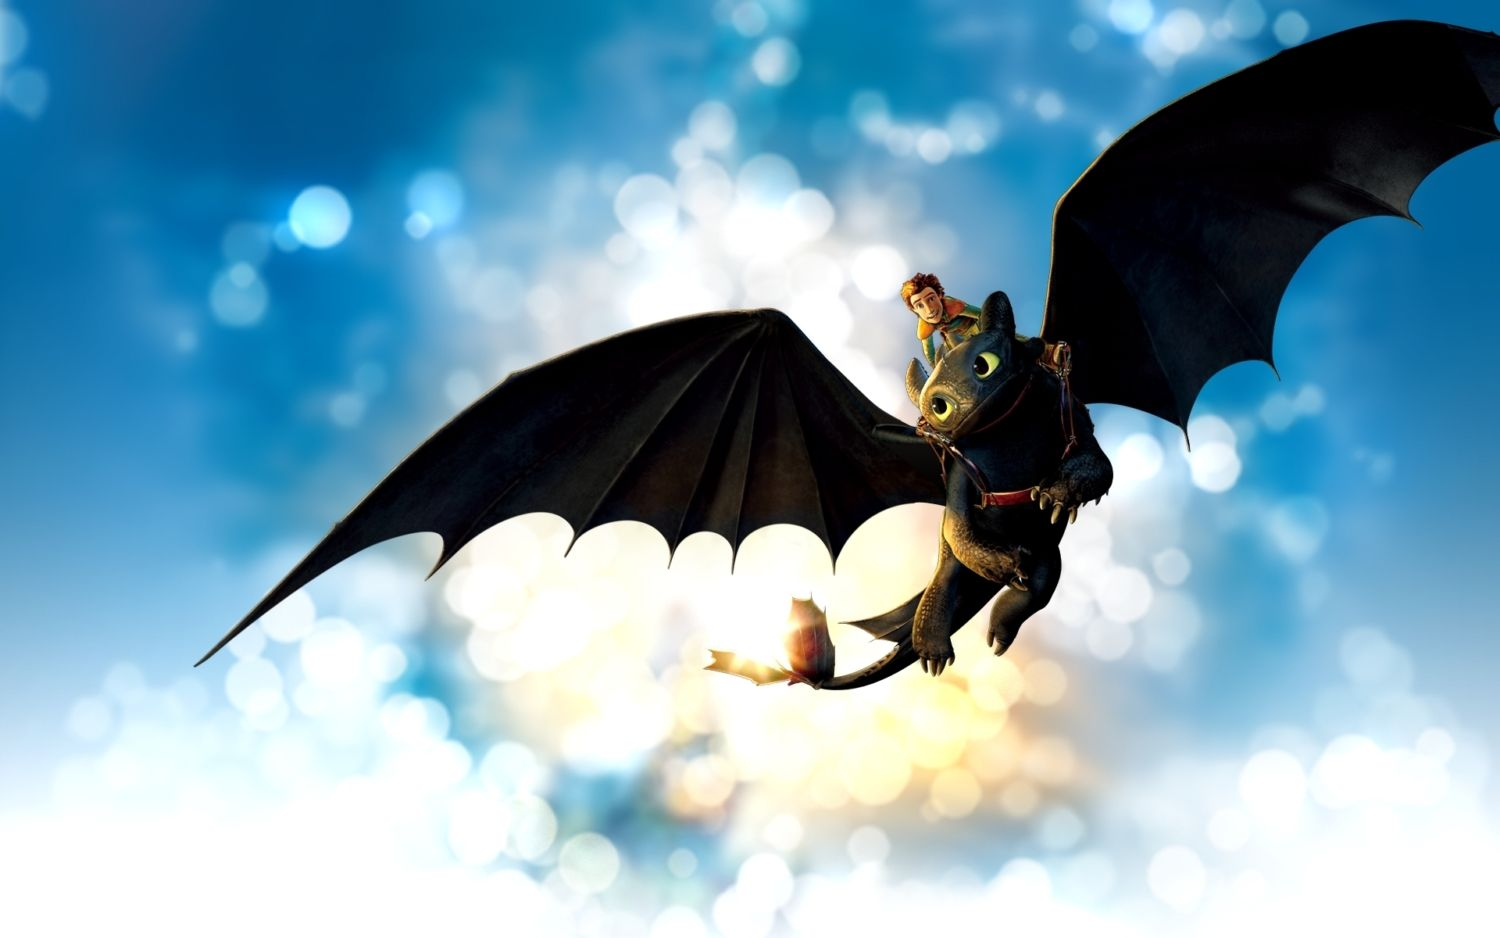 Toothless-how-to-train-your-dragon-13804265-1920-1200.jpg